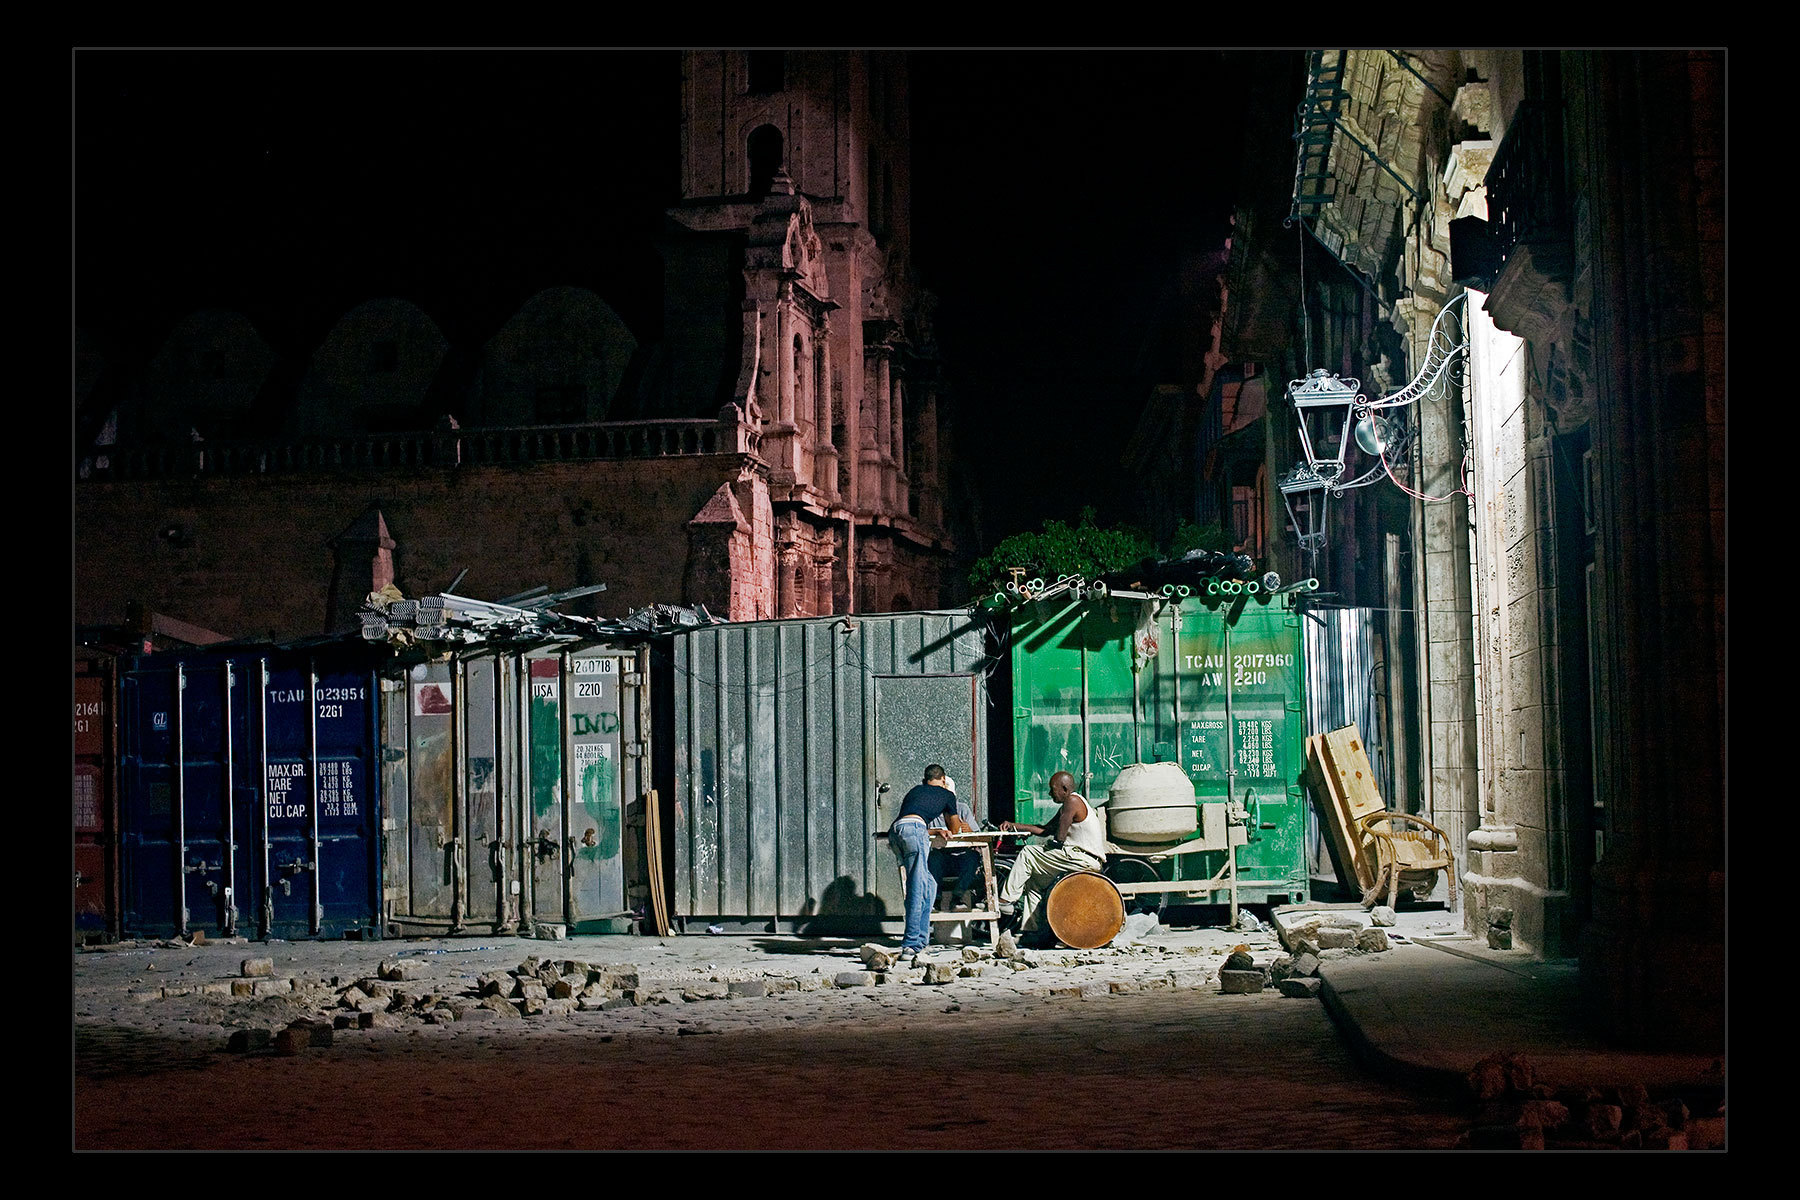 night dominoes, Havana